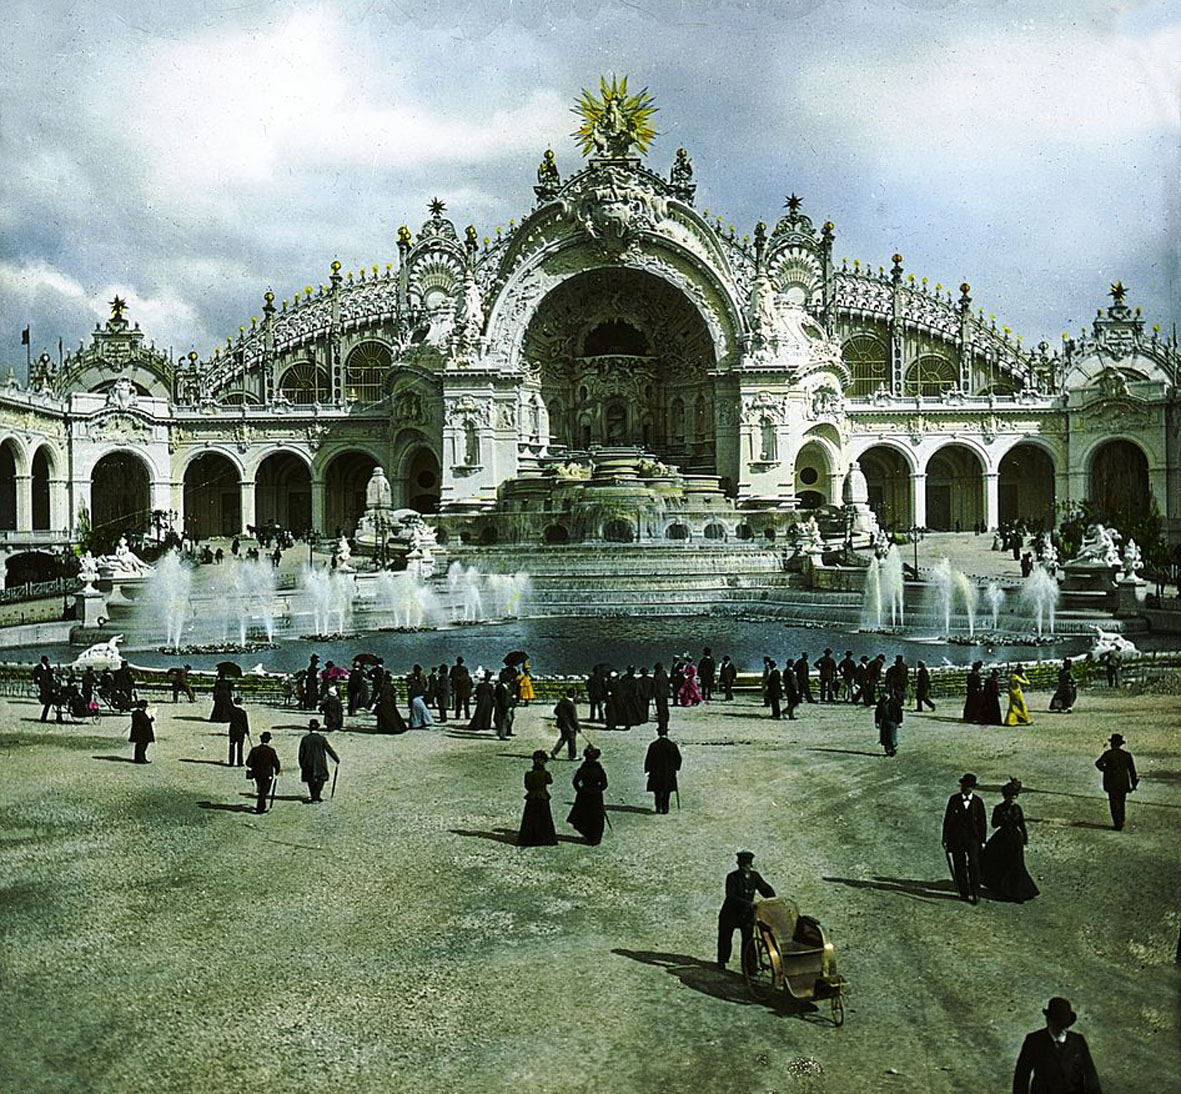 1900 Paris Exposition Palace of Electricity